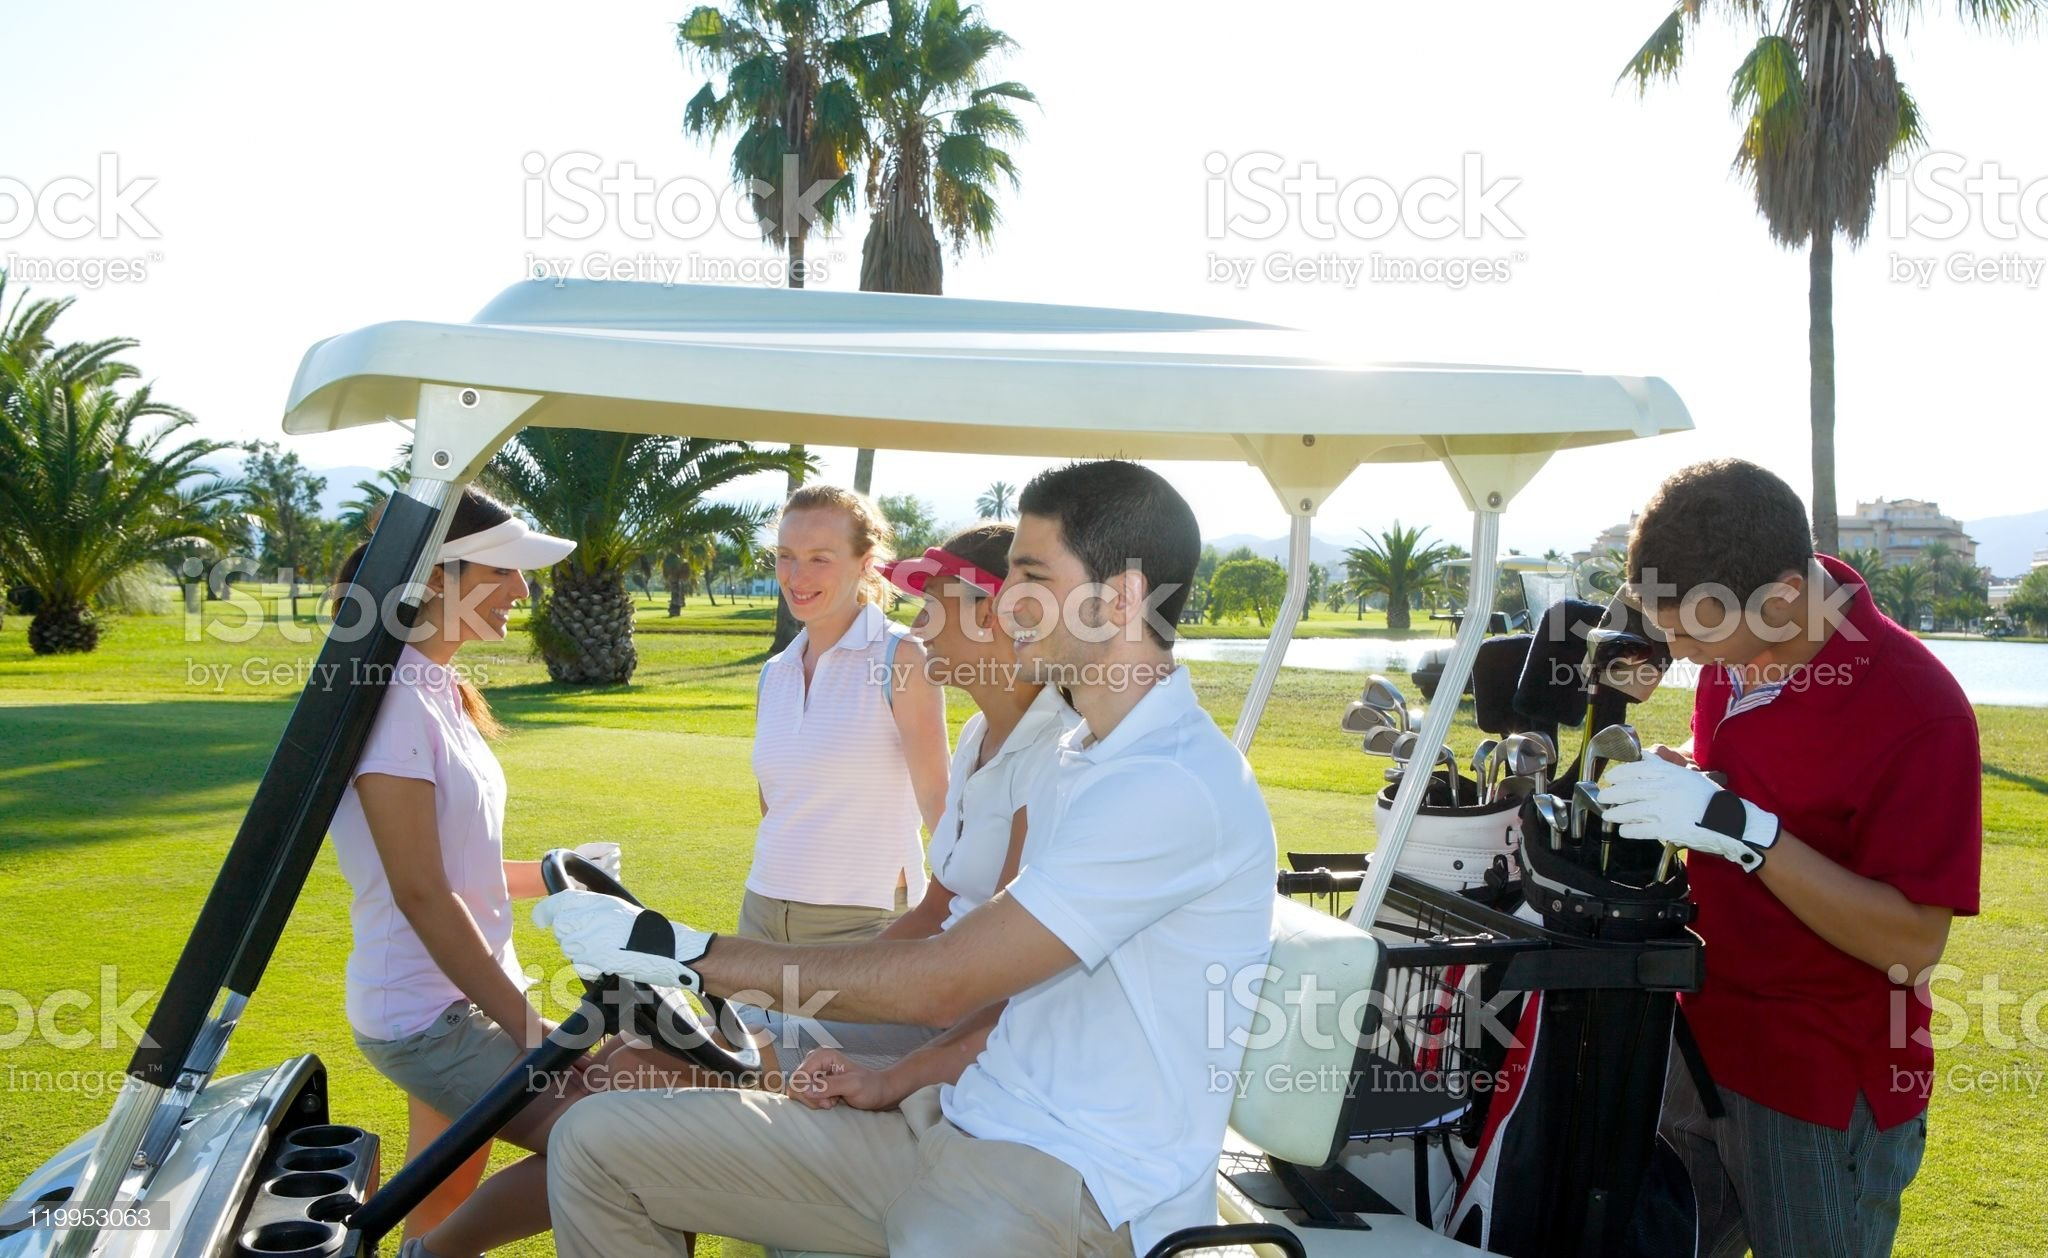 Golf course young people group buggy green field royalty-free stock photo